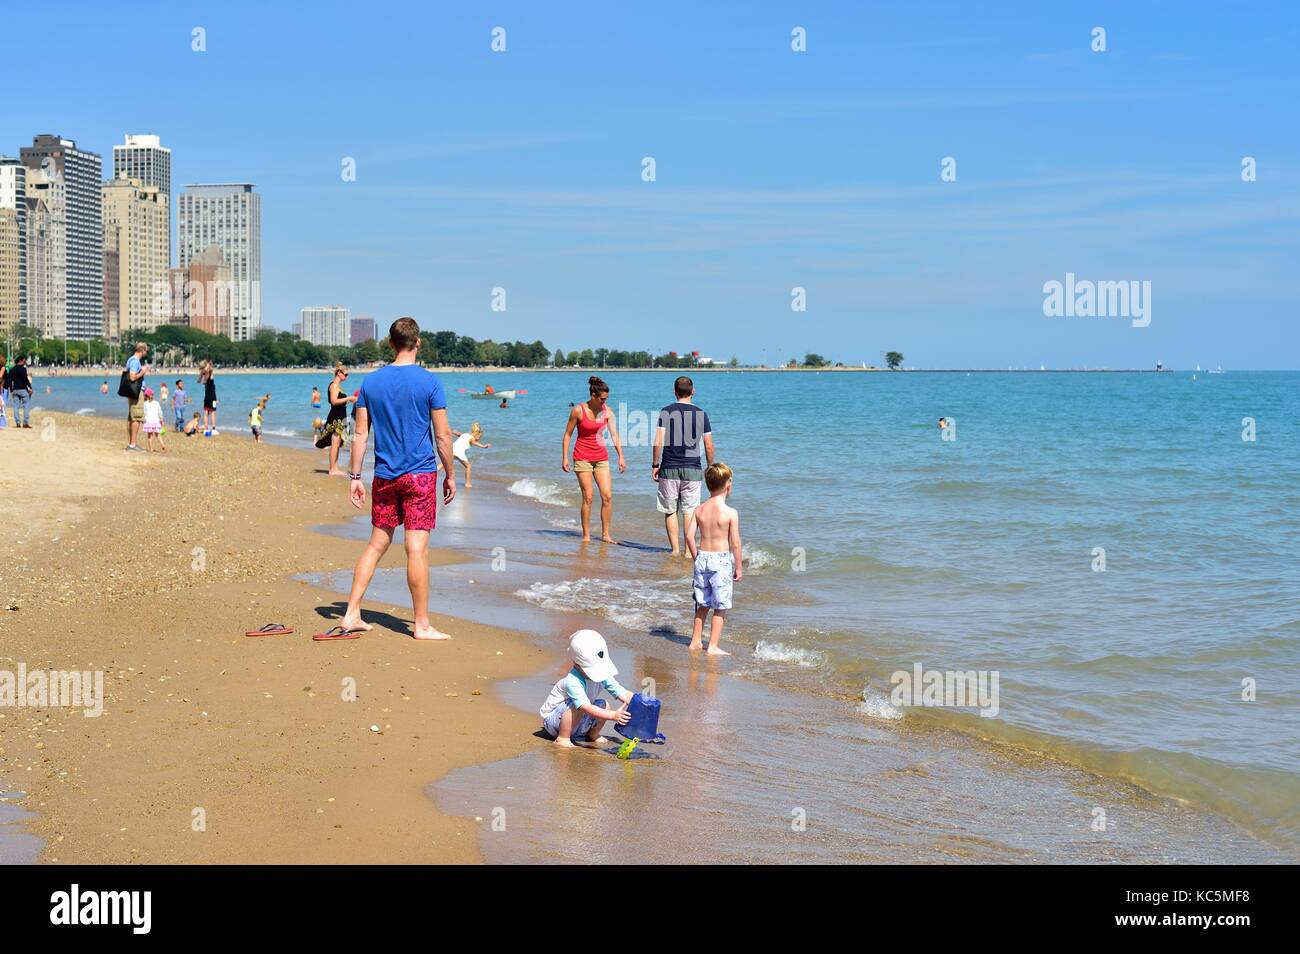 Young boy playing in the sand among people enjoying a summer day at Chicago's Oak Street Beach. Chicago, Illinois, - Stock Image